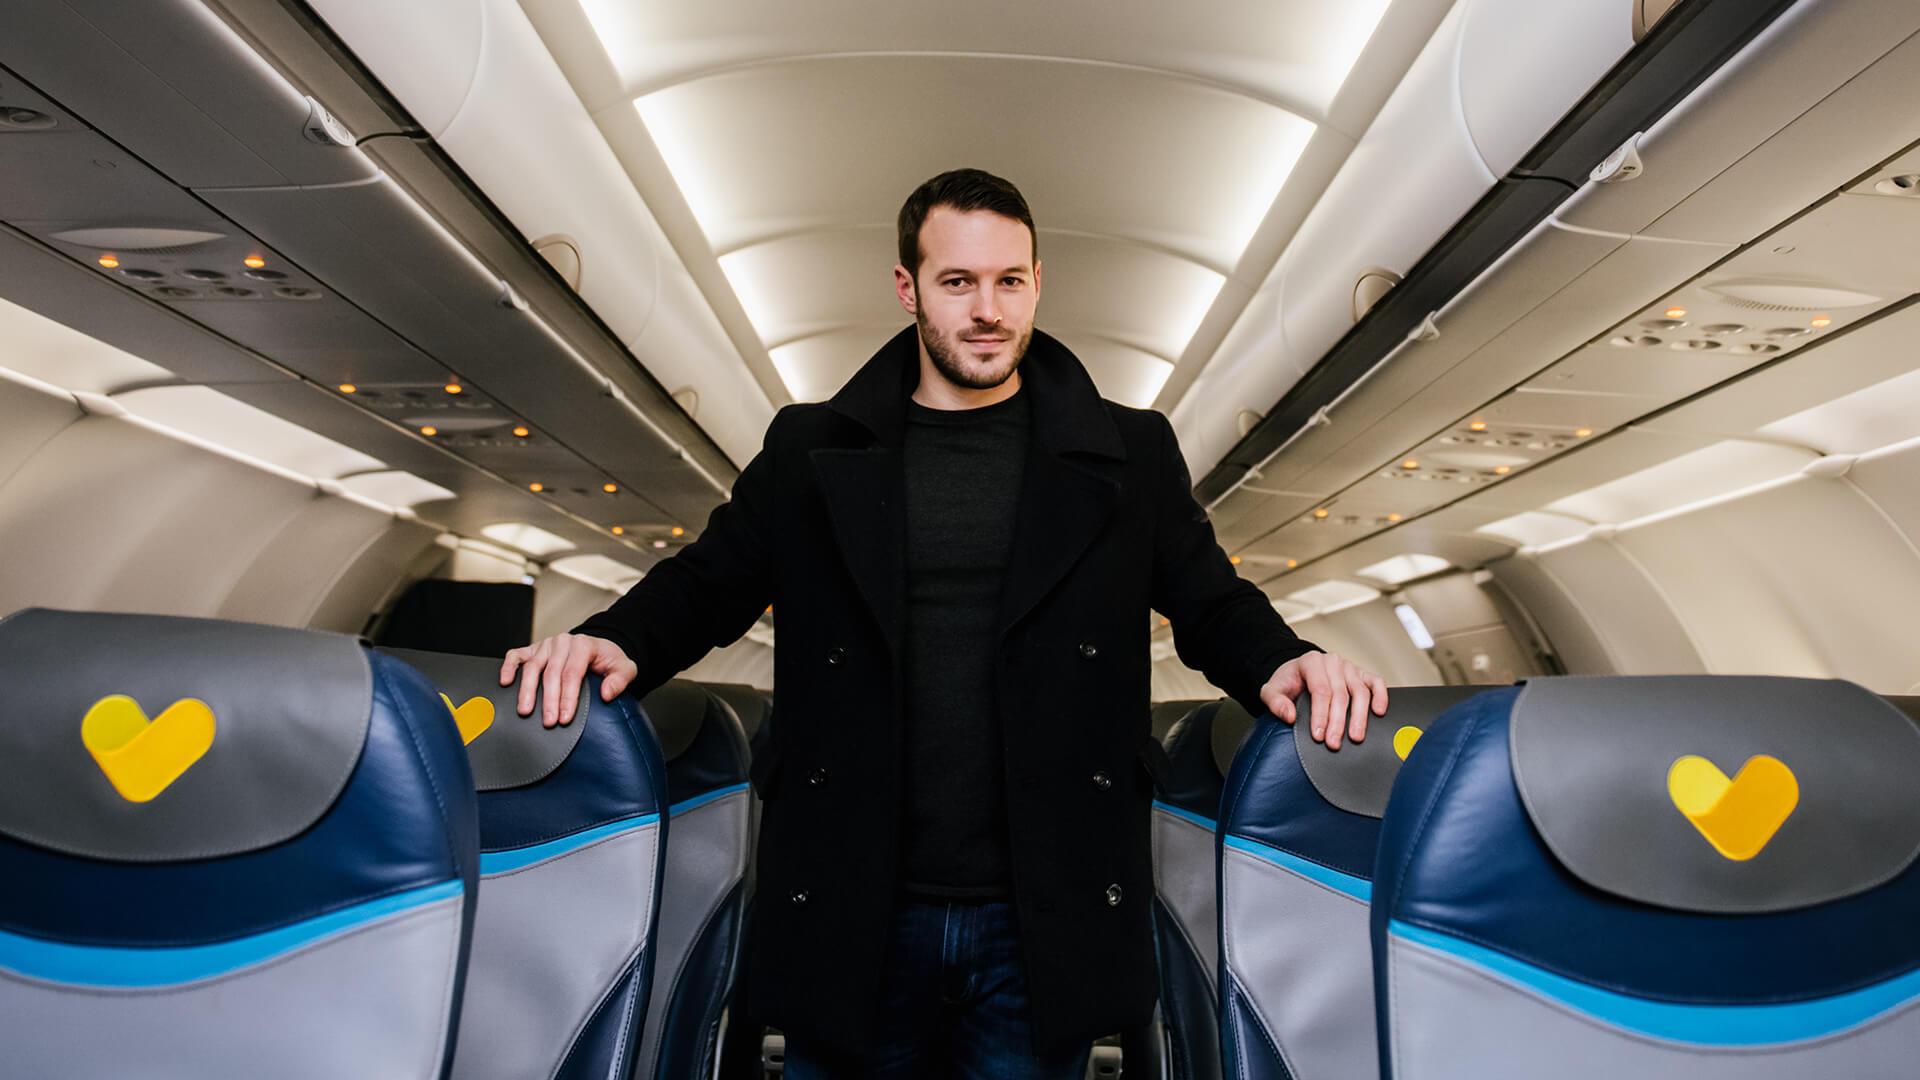 Mind reader and hypnotist Aaron Calvert on Thomas Cook Airlines plane for hypnosis experiment with first time fliers